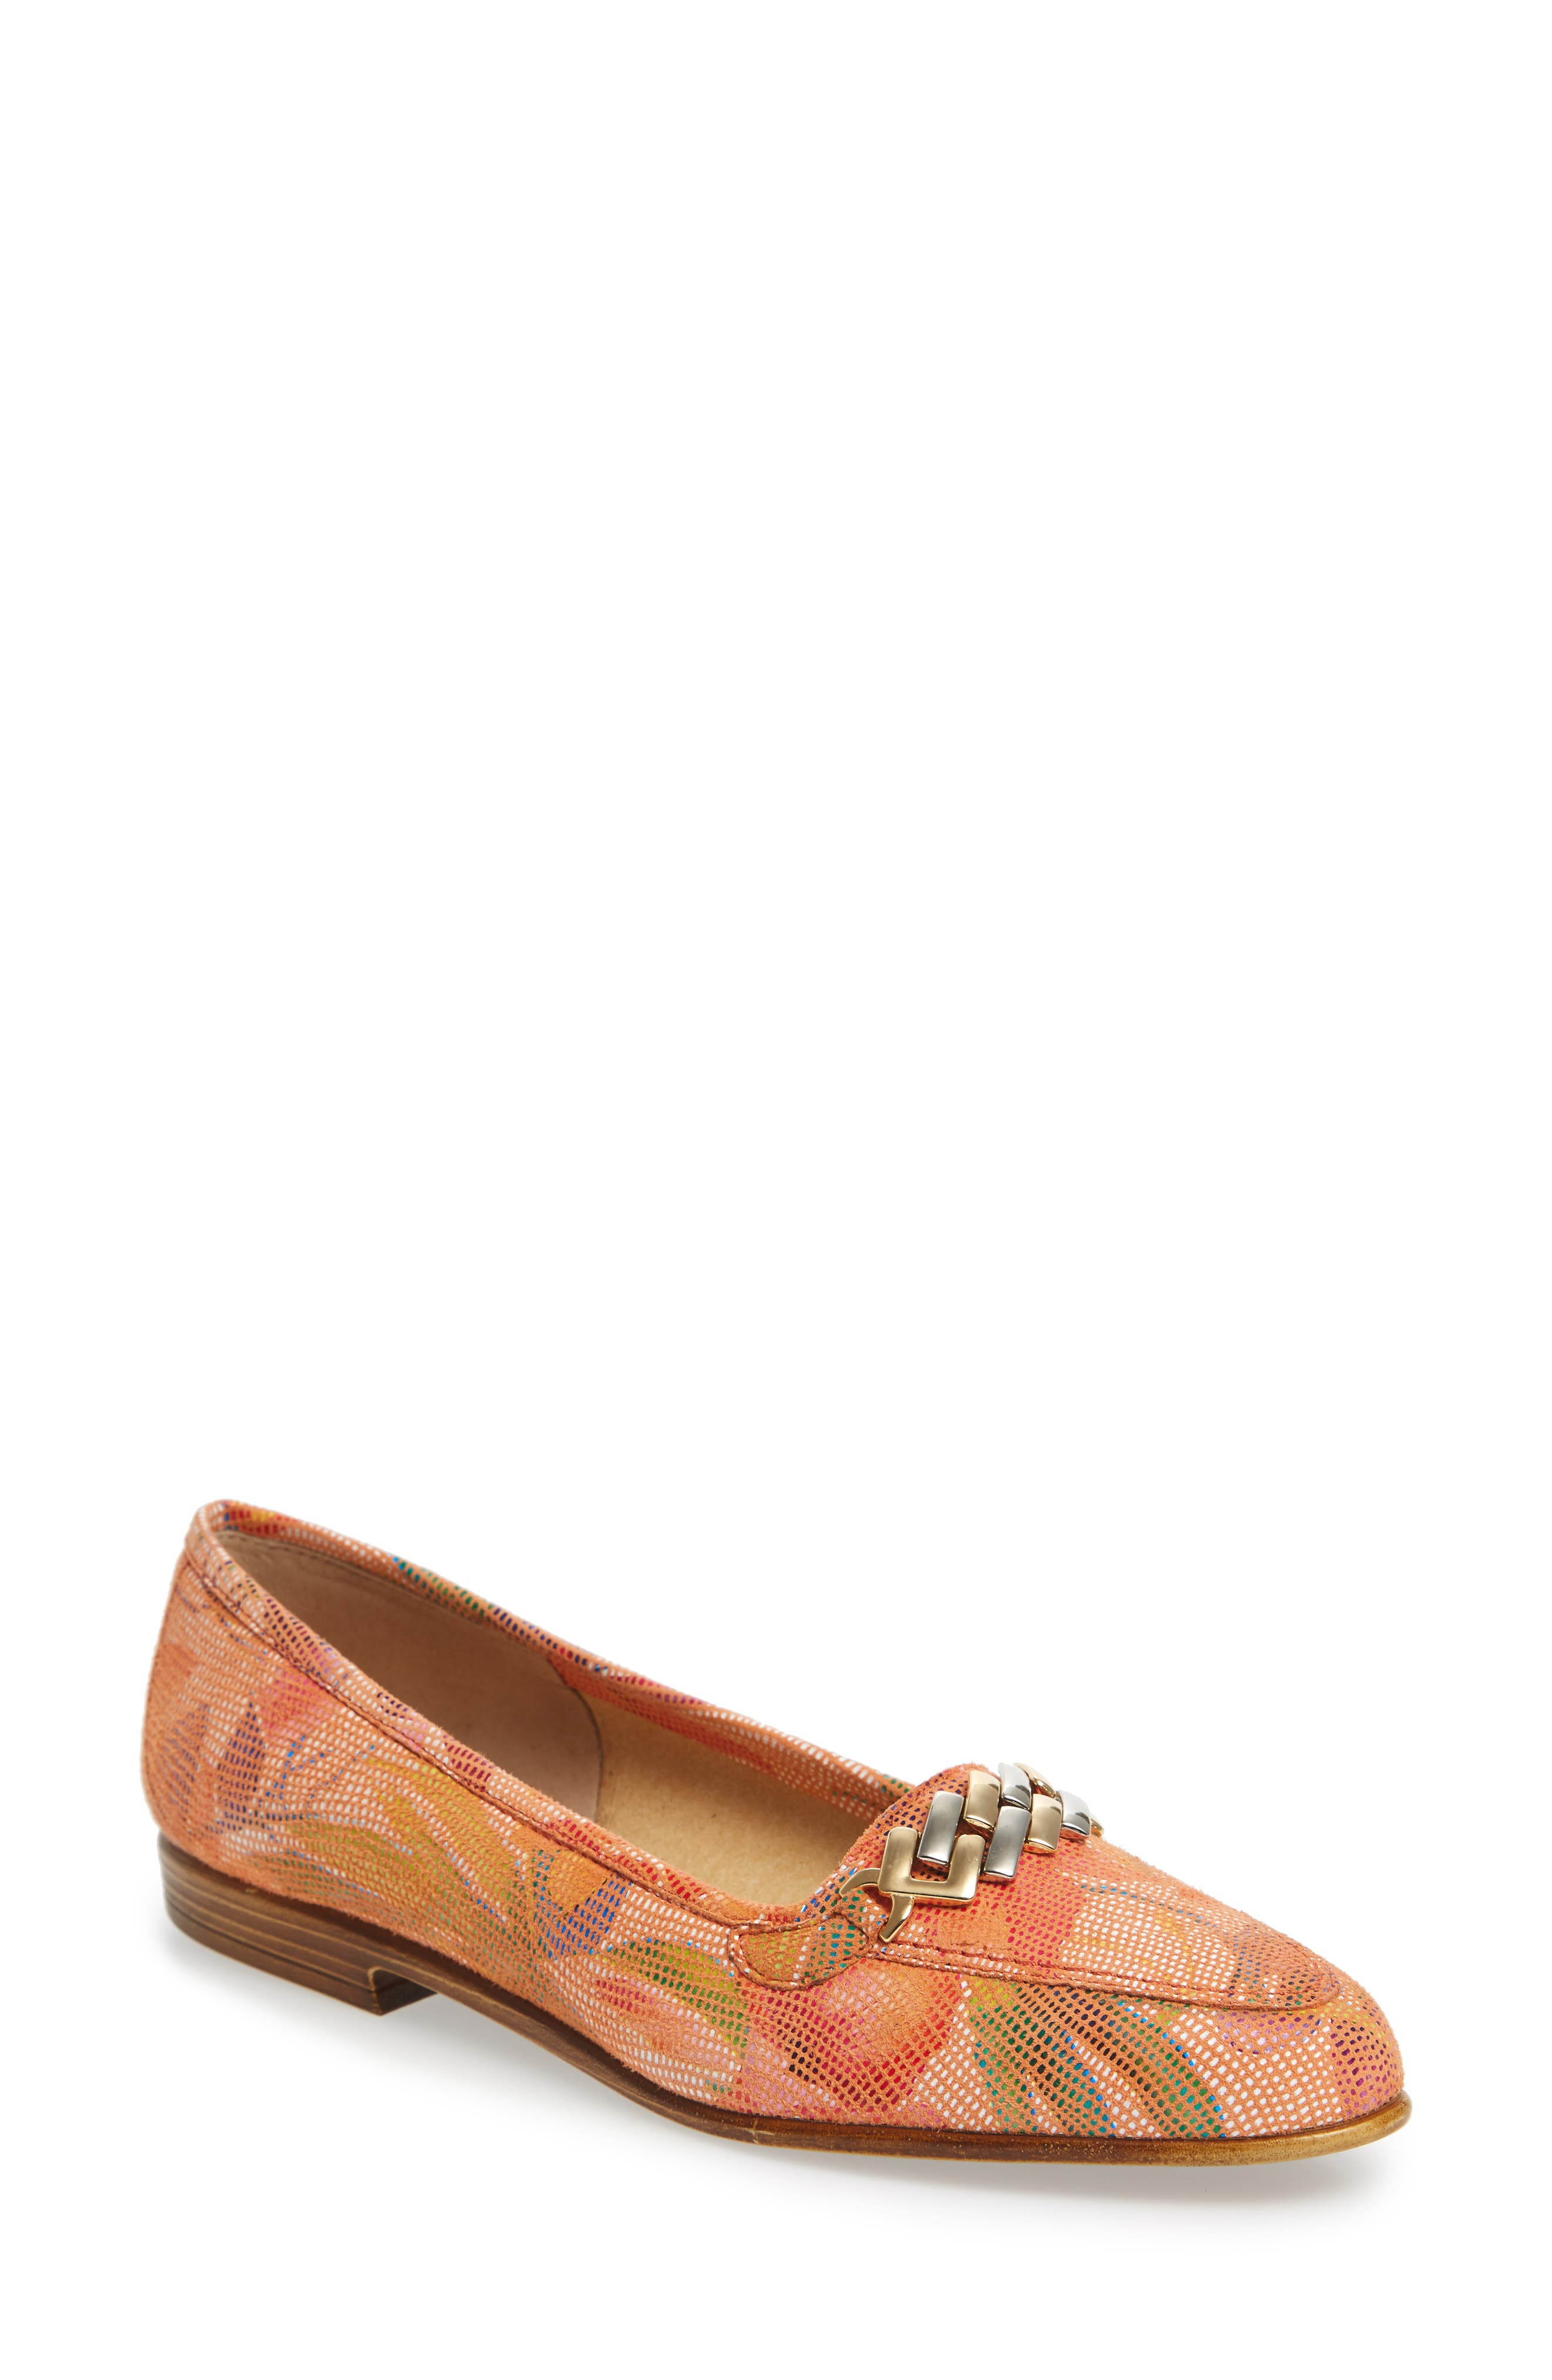 Oste Loafer,                         Main,                         color, Salmon Leather